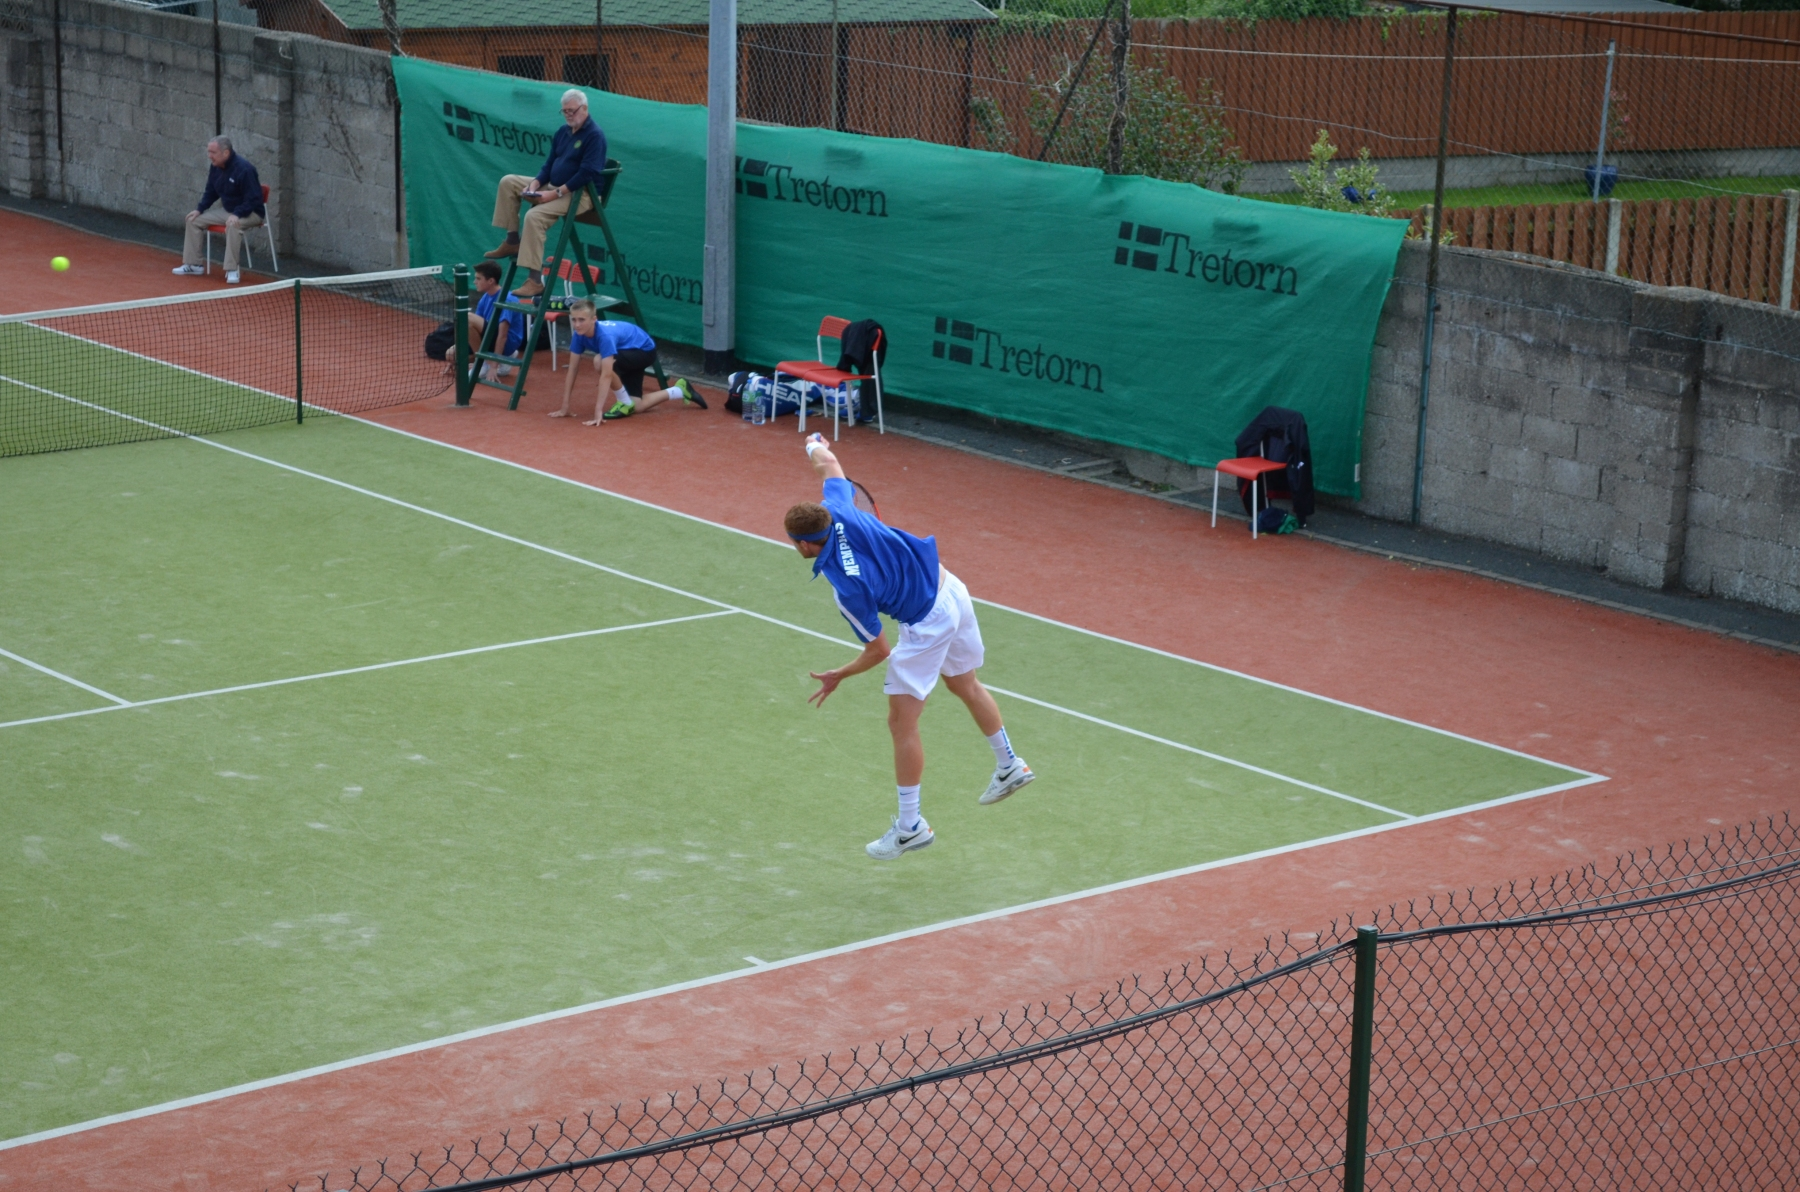 Dave-OHare-serving